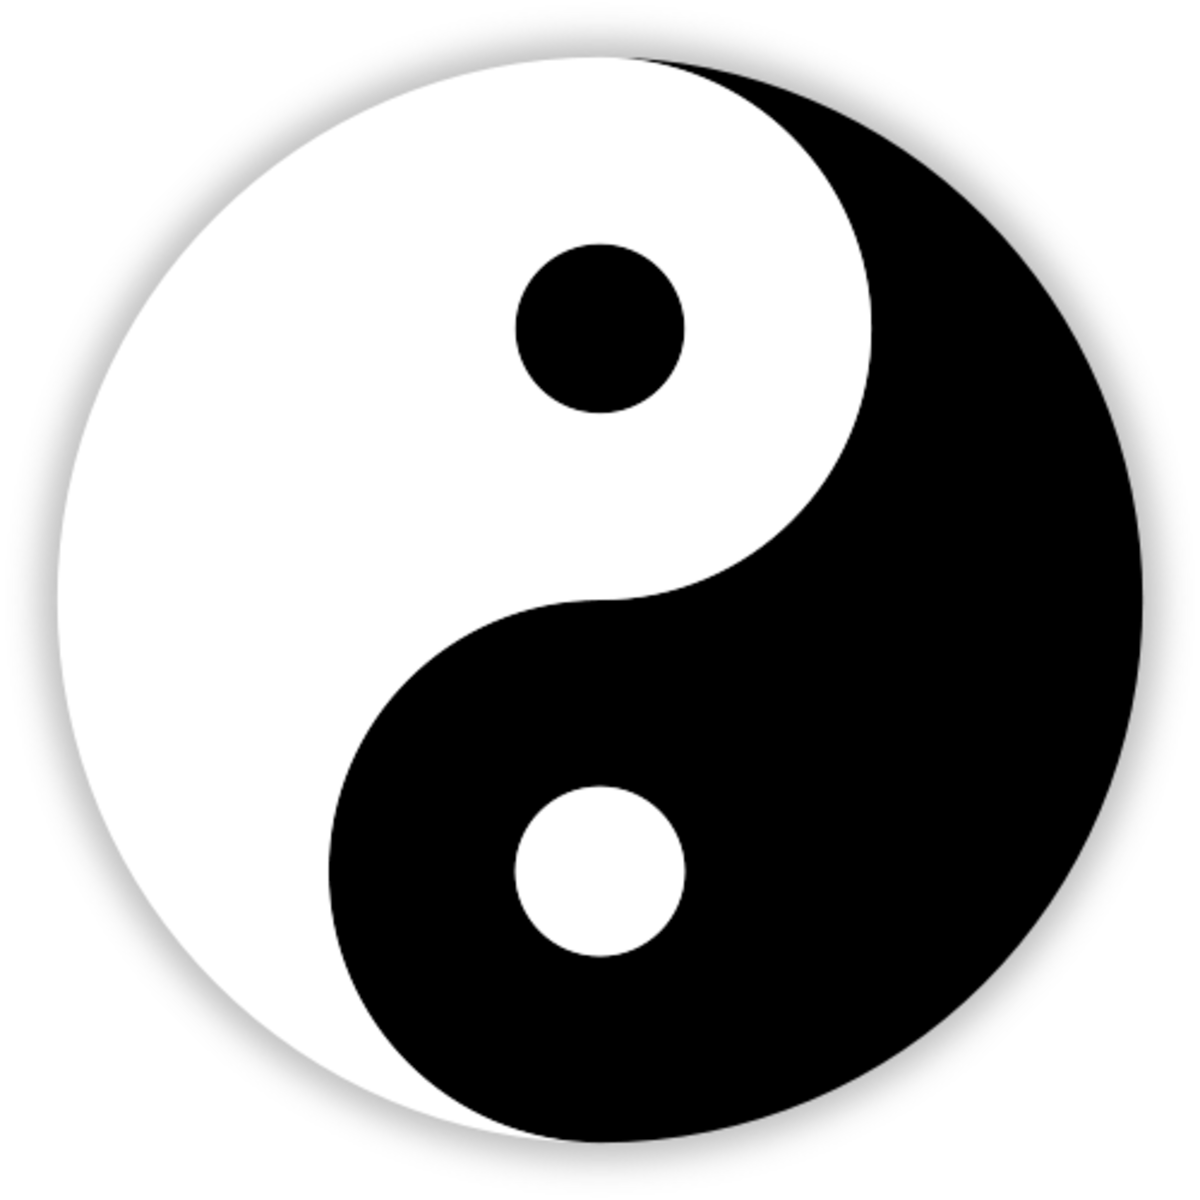 The Yin Yang Which Translates Dark Light Symbol That Is